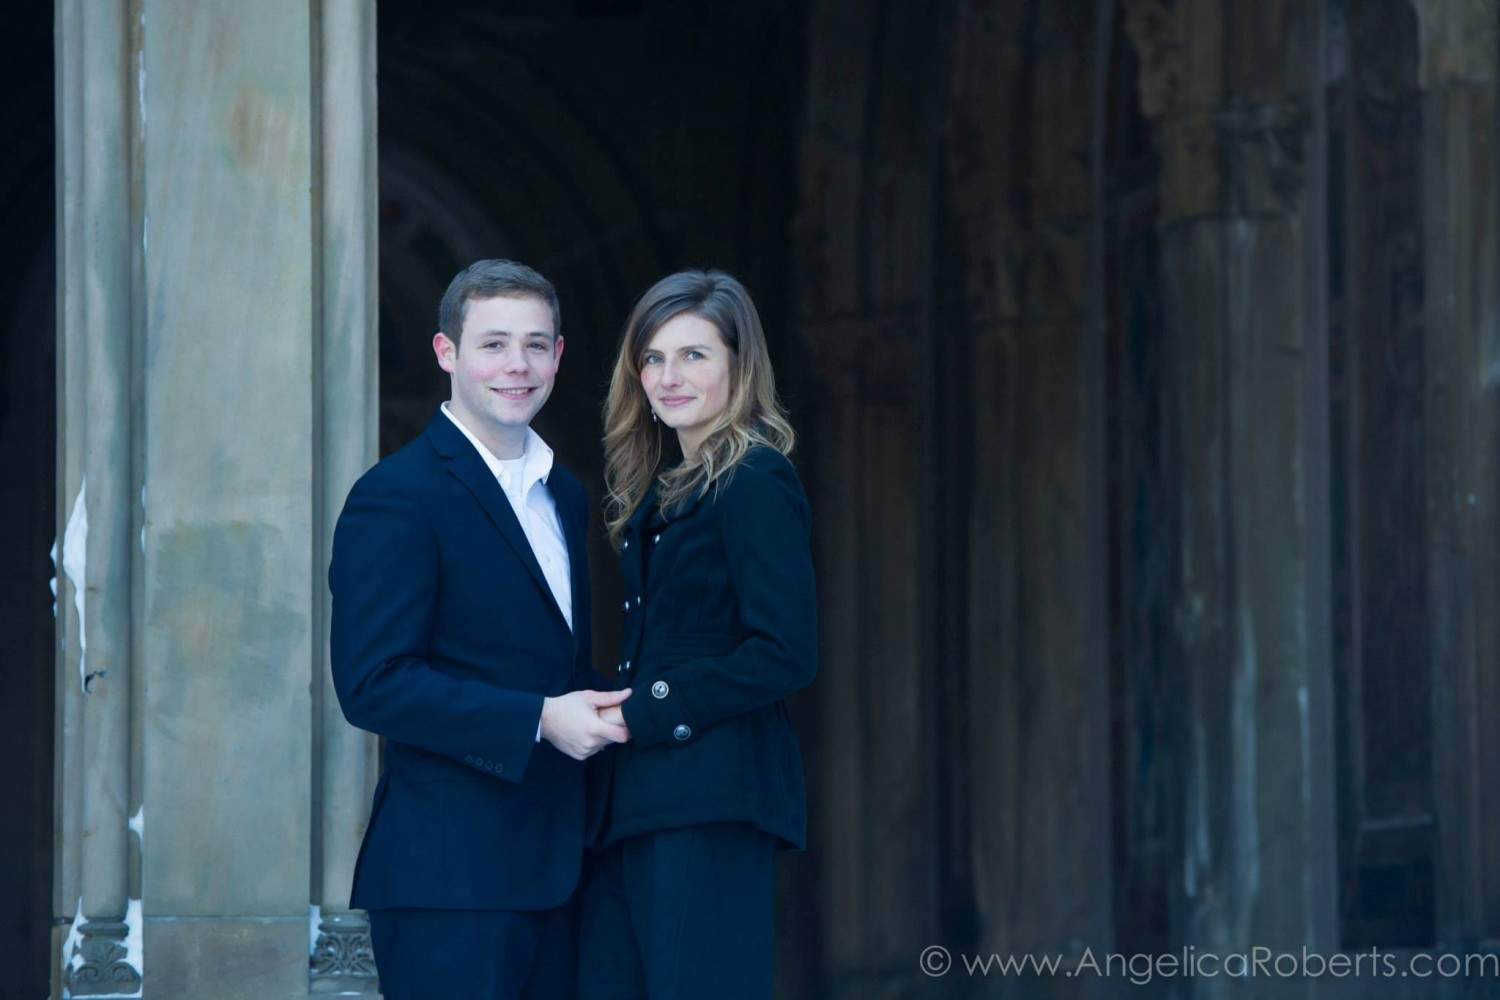 Angelica Roberts Photography - Central Park Engagement shoot 14